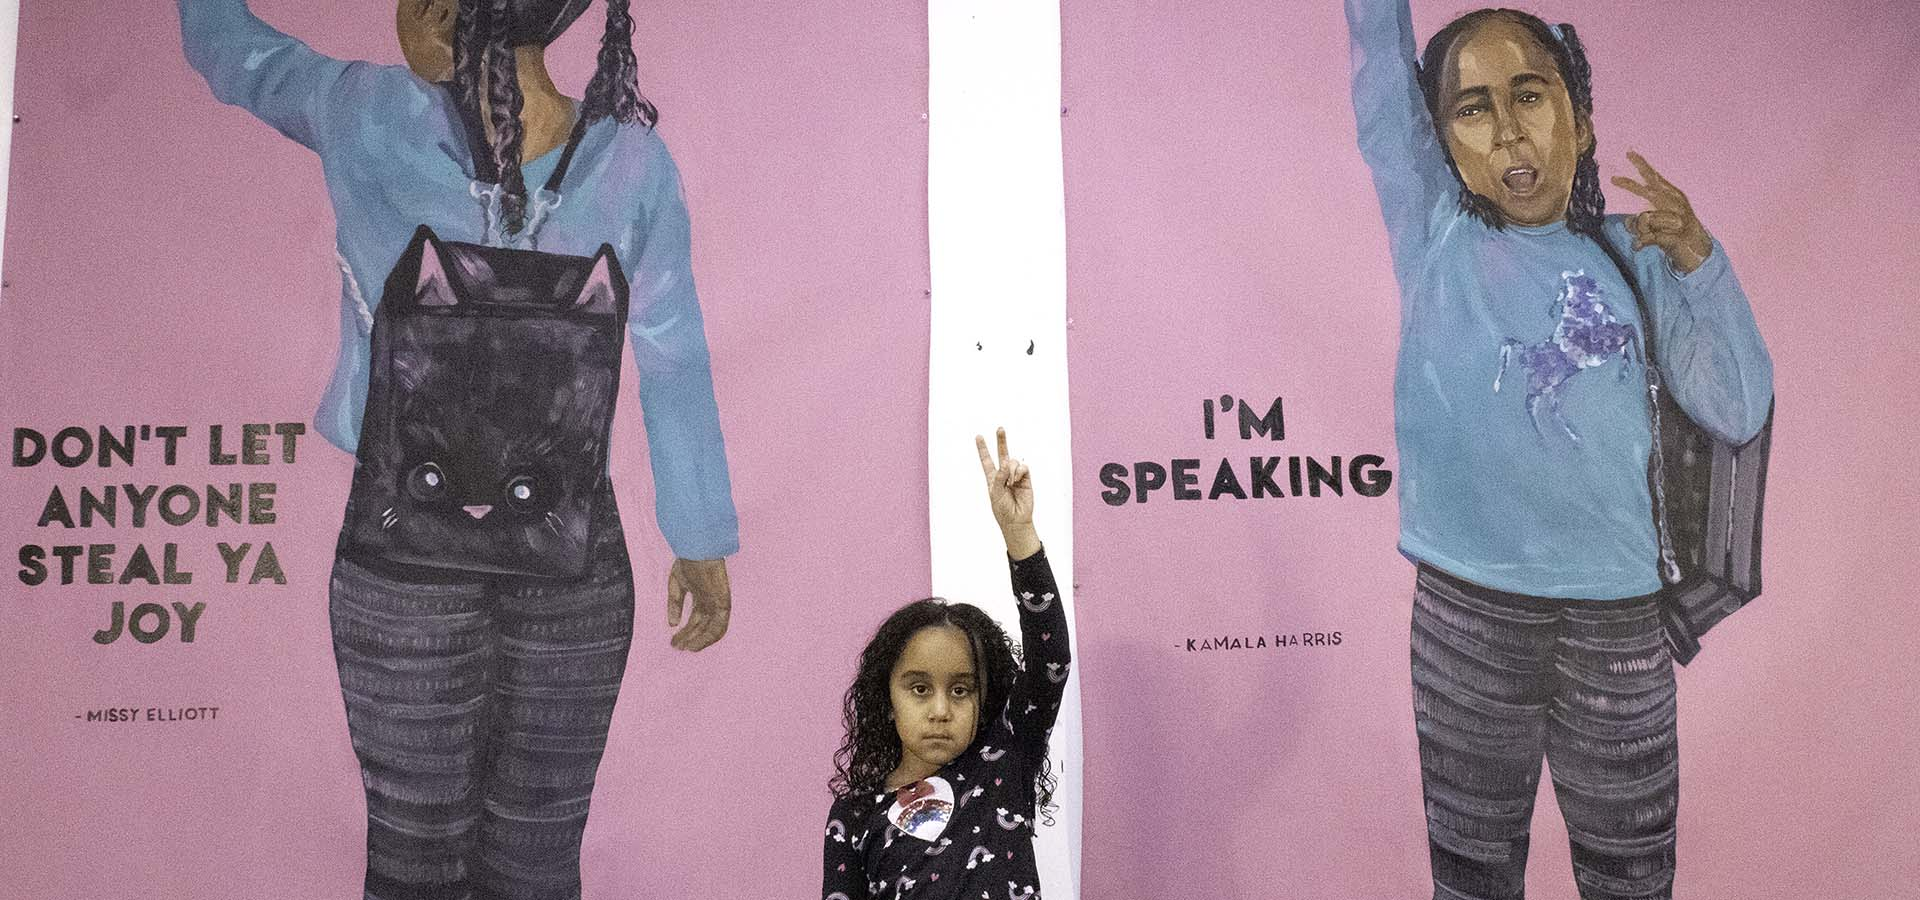 Window mural art featuring an African-American girl with messaging about BIPOC awareness with young girl in front holding up a peace sign with her fingers.